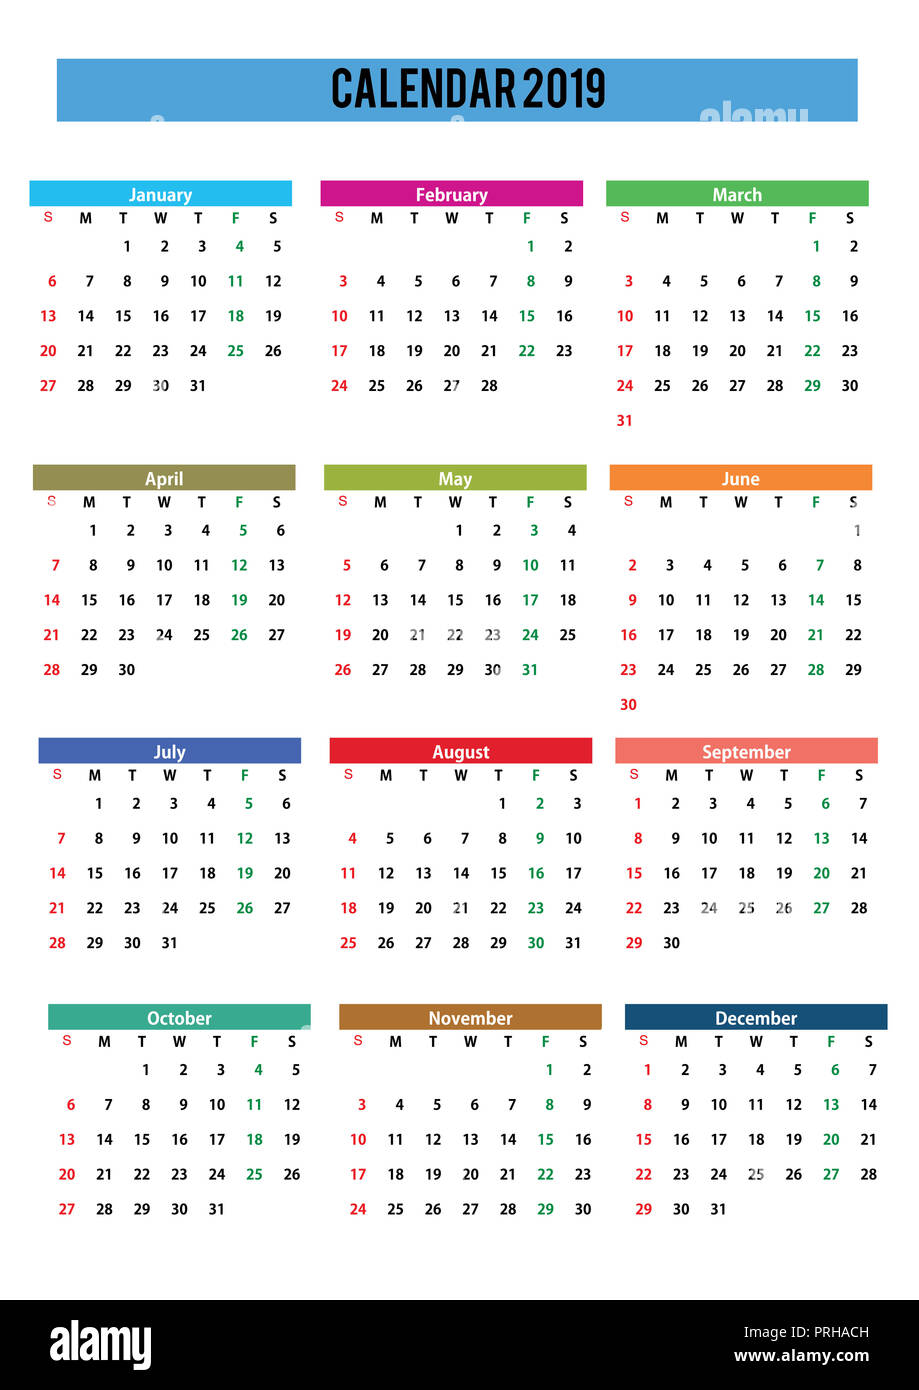 Calendrier Photo A3.2019 Calendrier Generique Anglais A3 Pour La Culture Facile